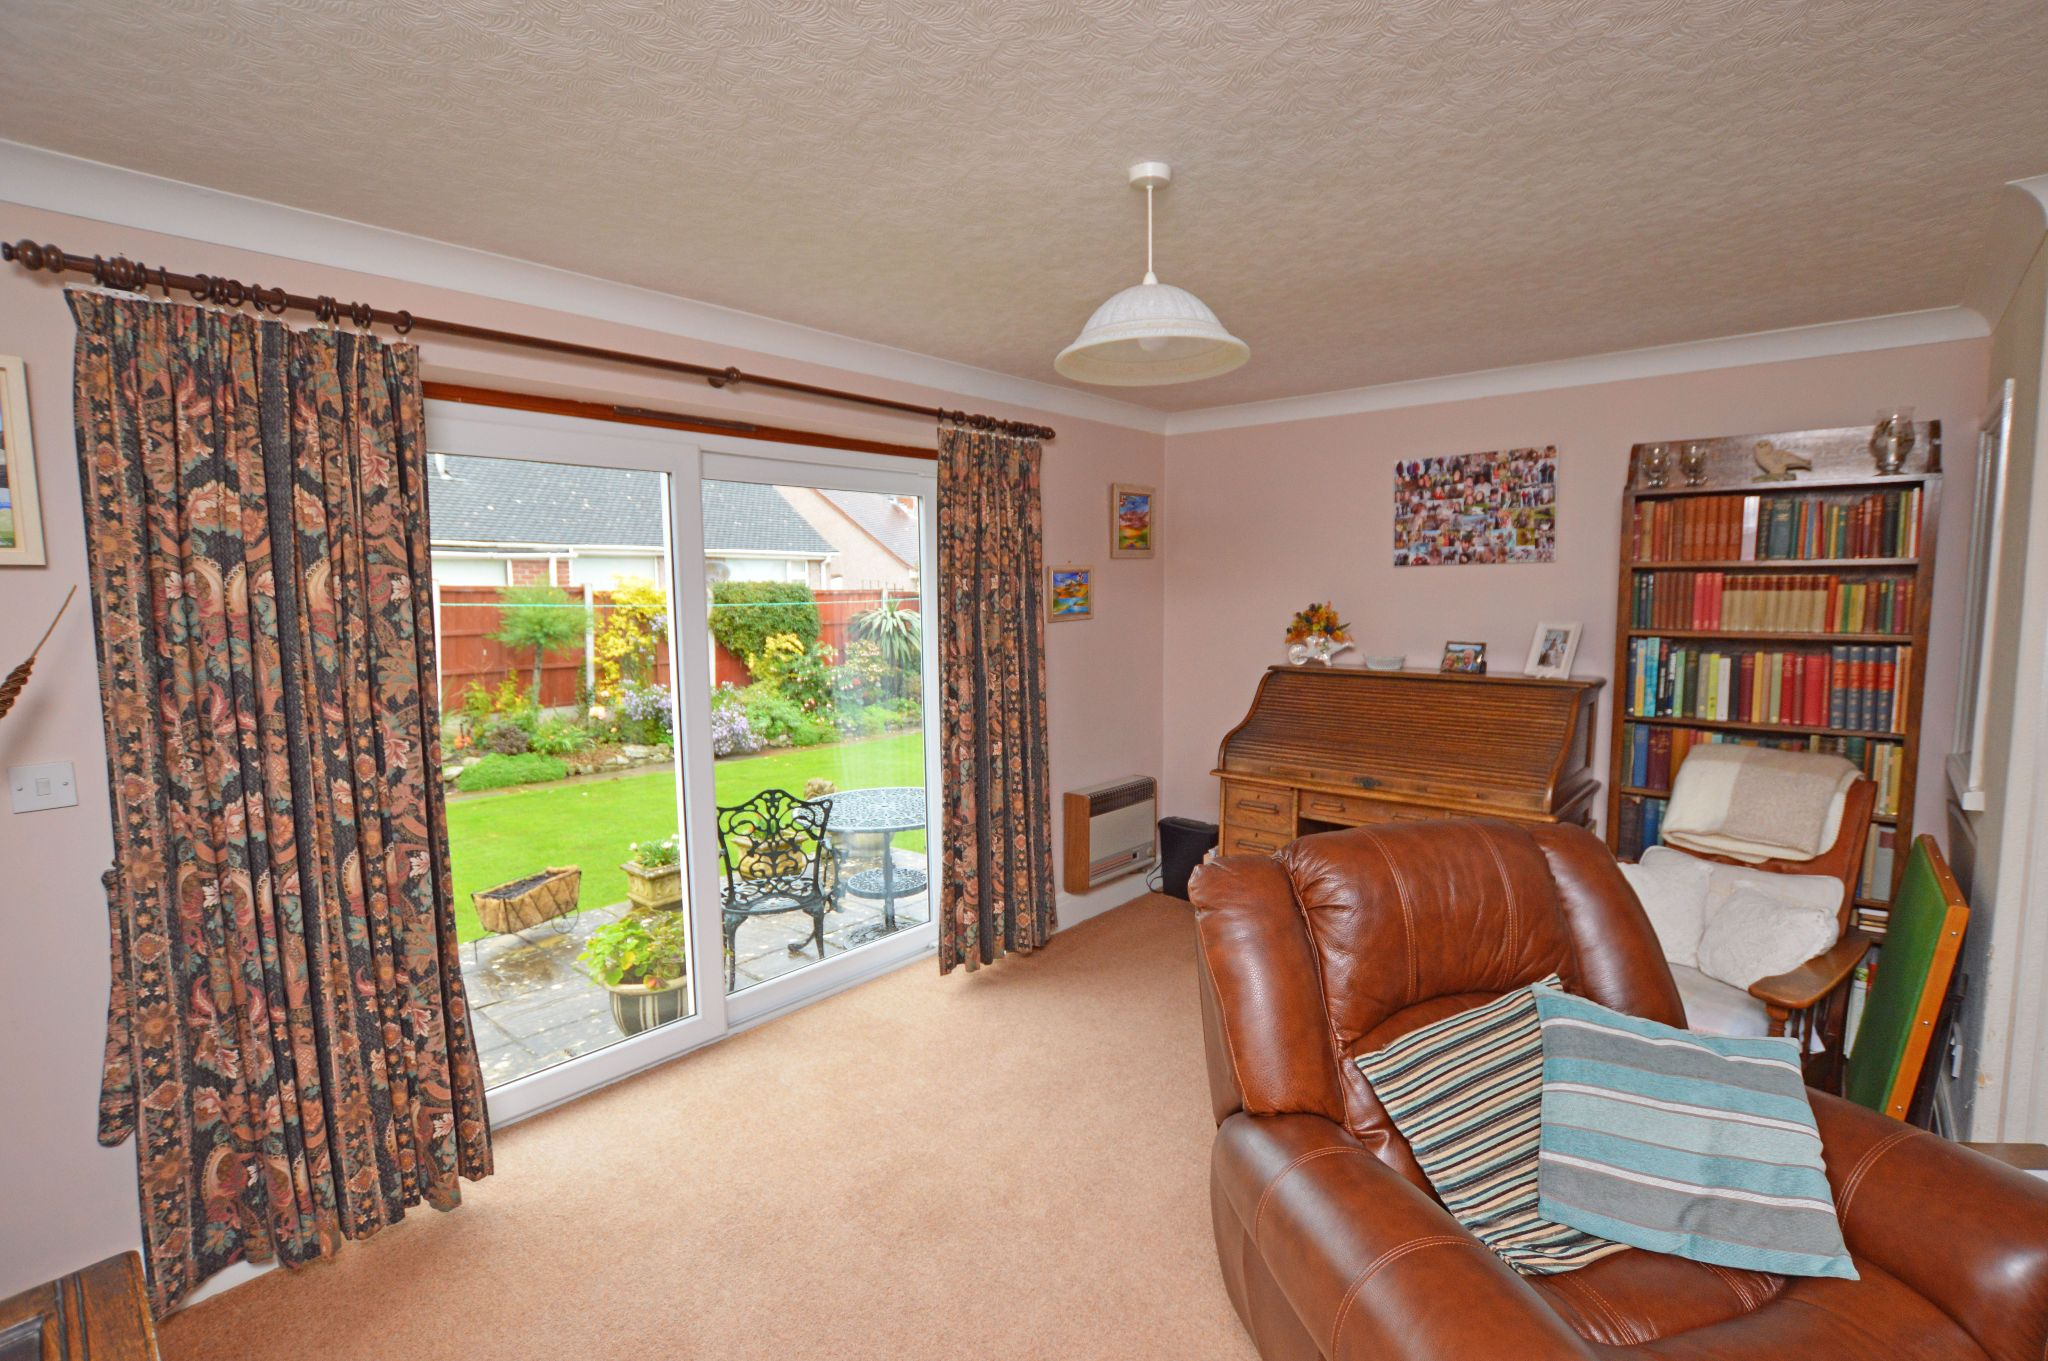 4 bedroom detached house For Sale in Abergele - Dining Area